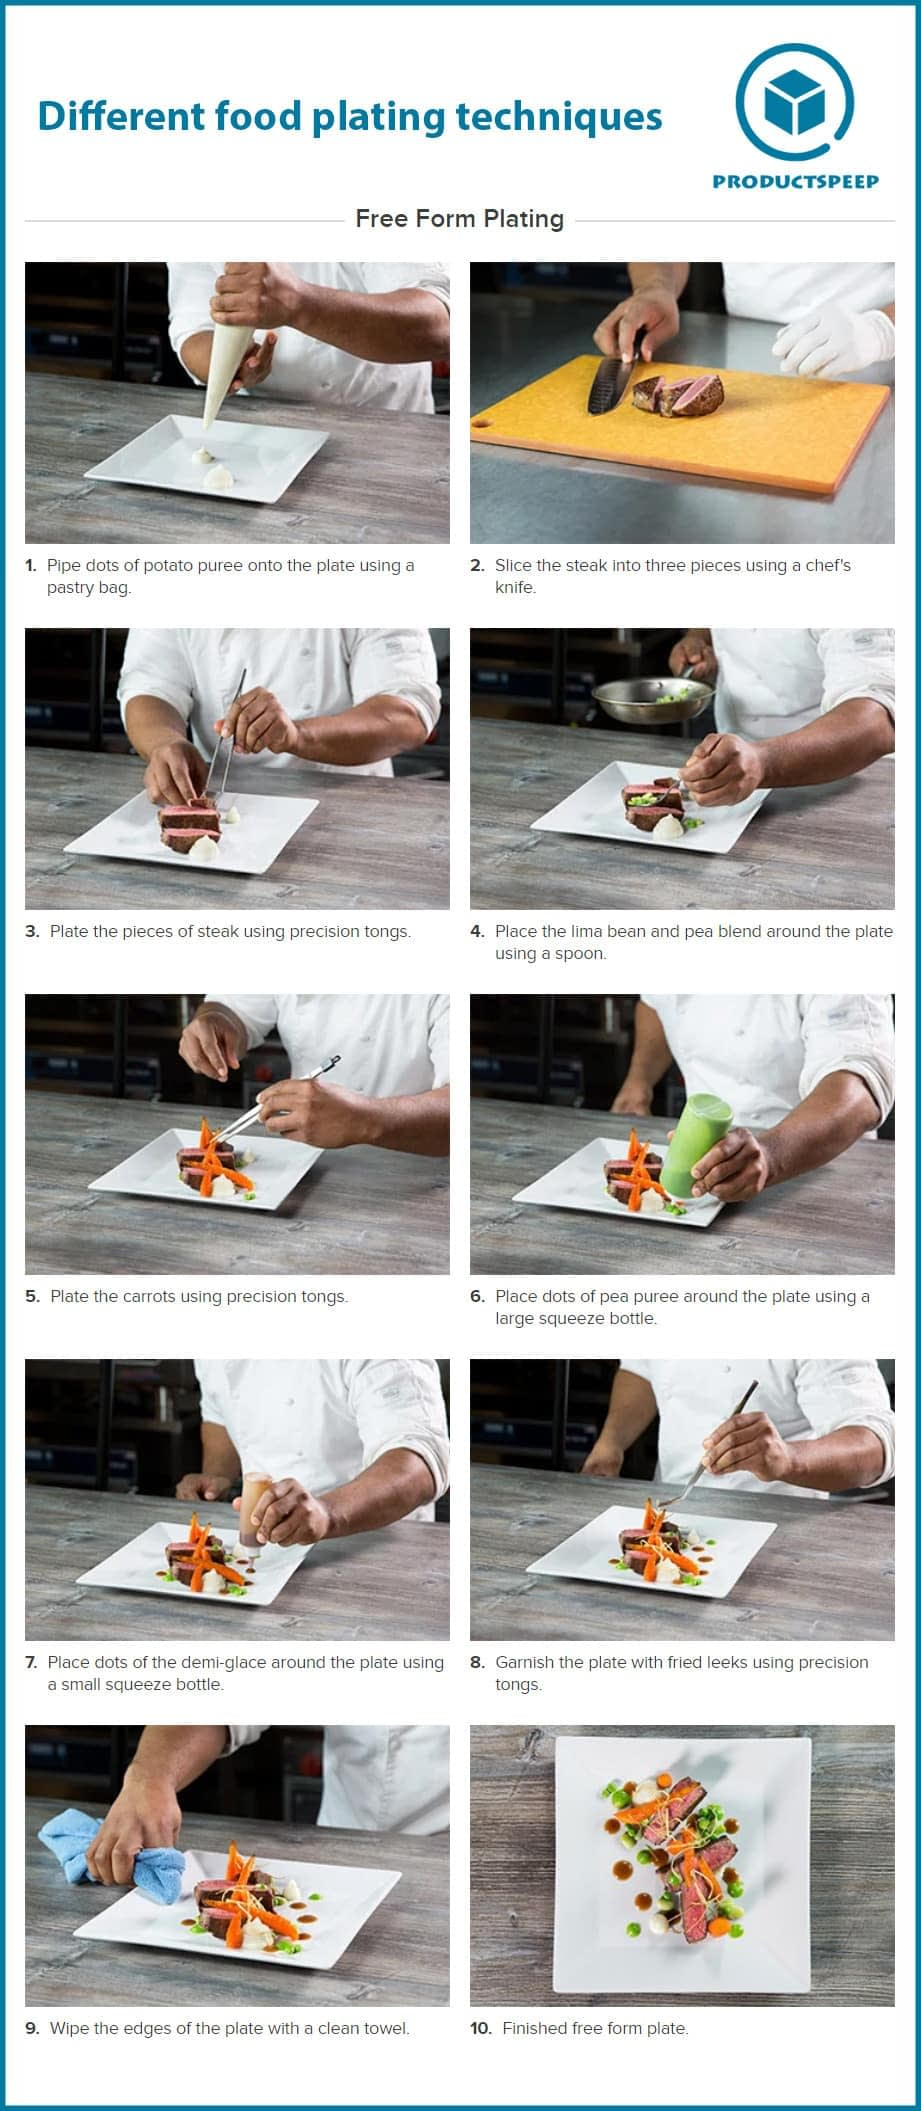 Different food plating and presentation techniques